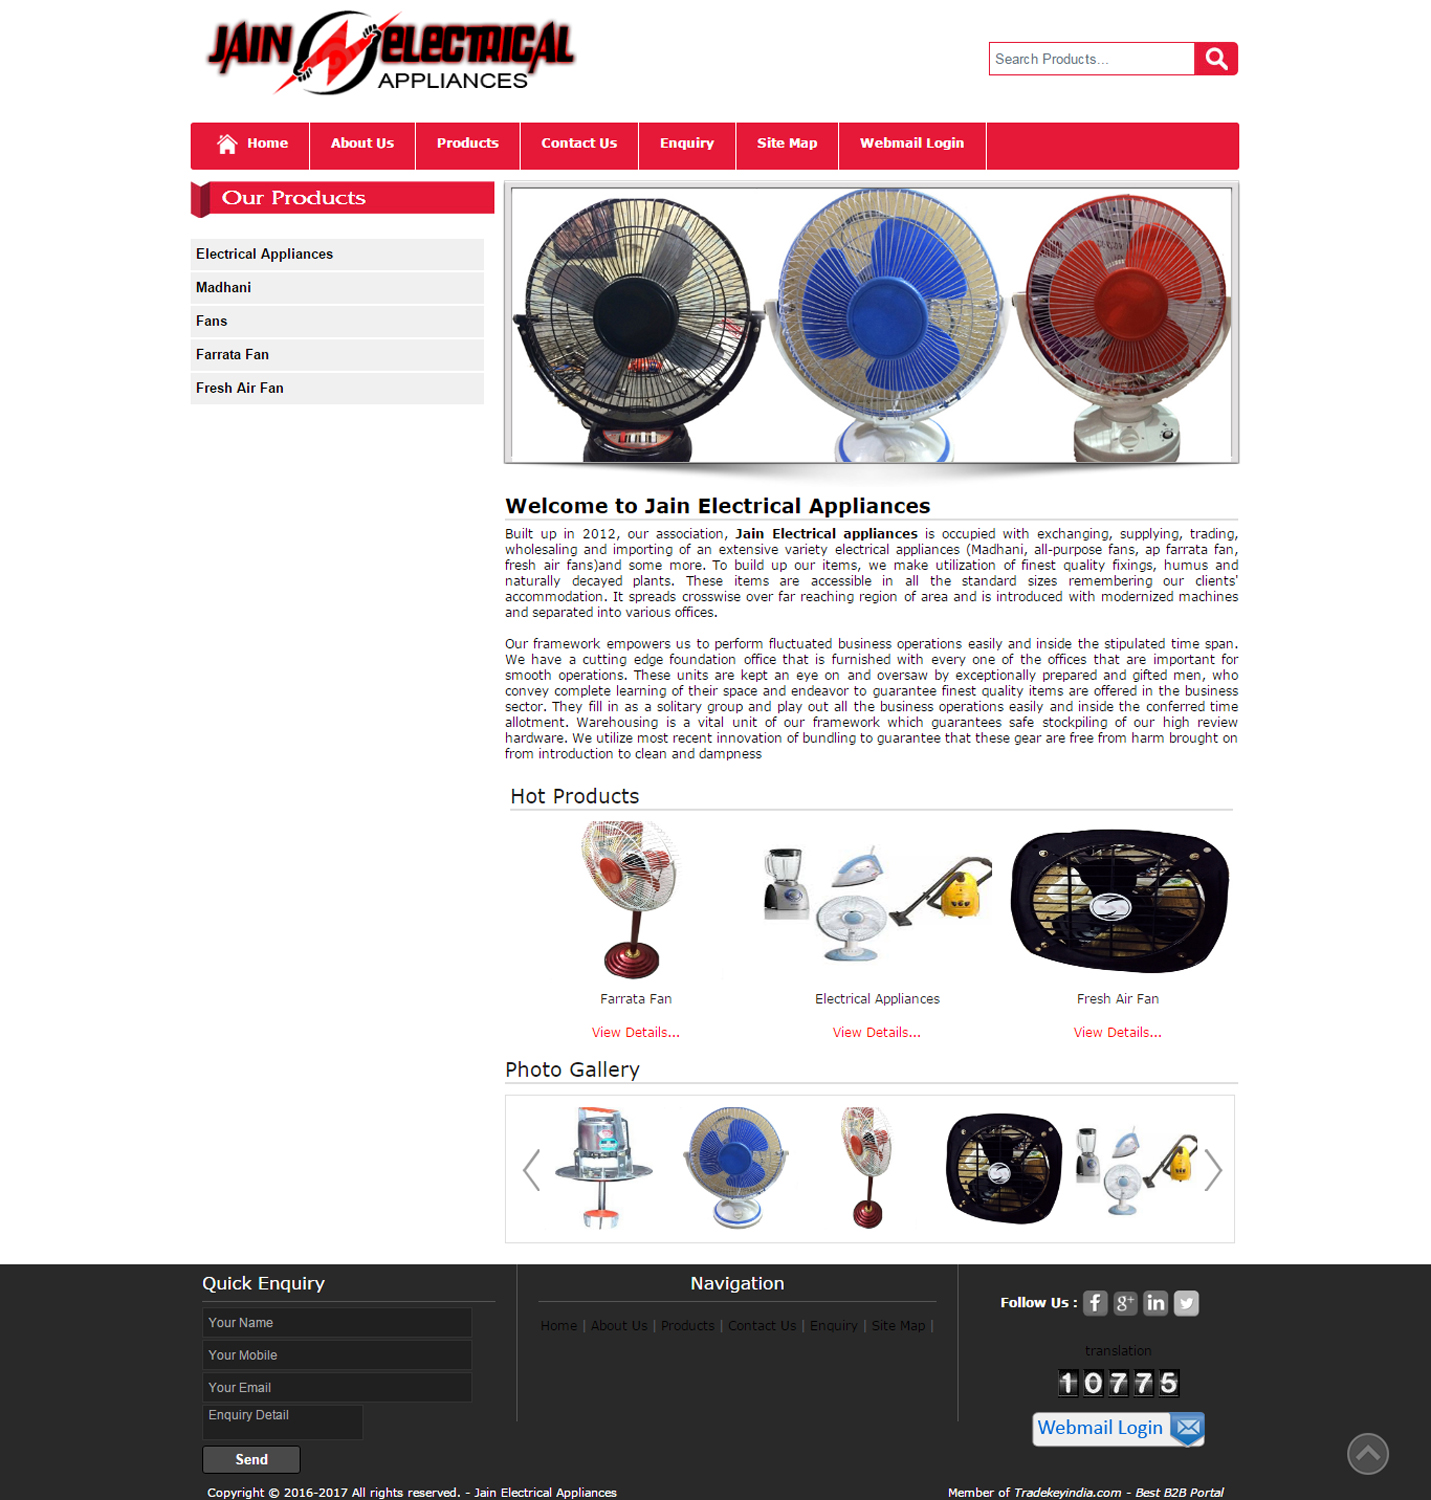 Jain Electrical Appliances